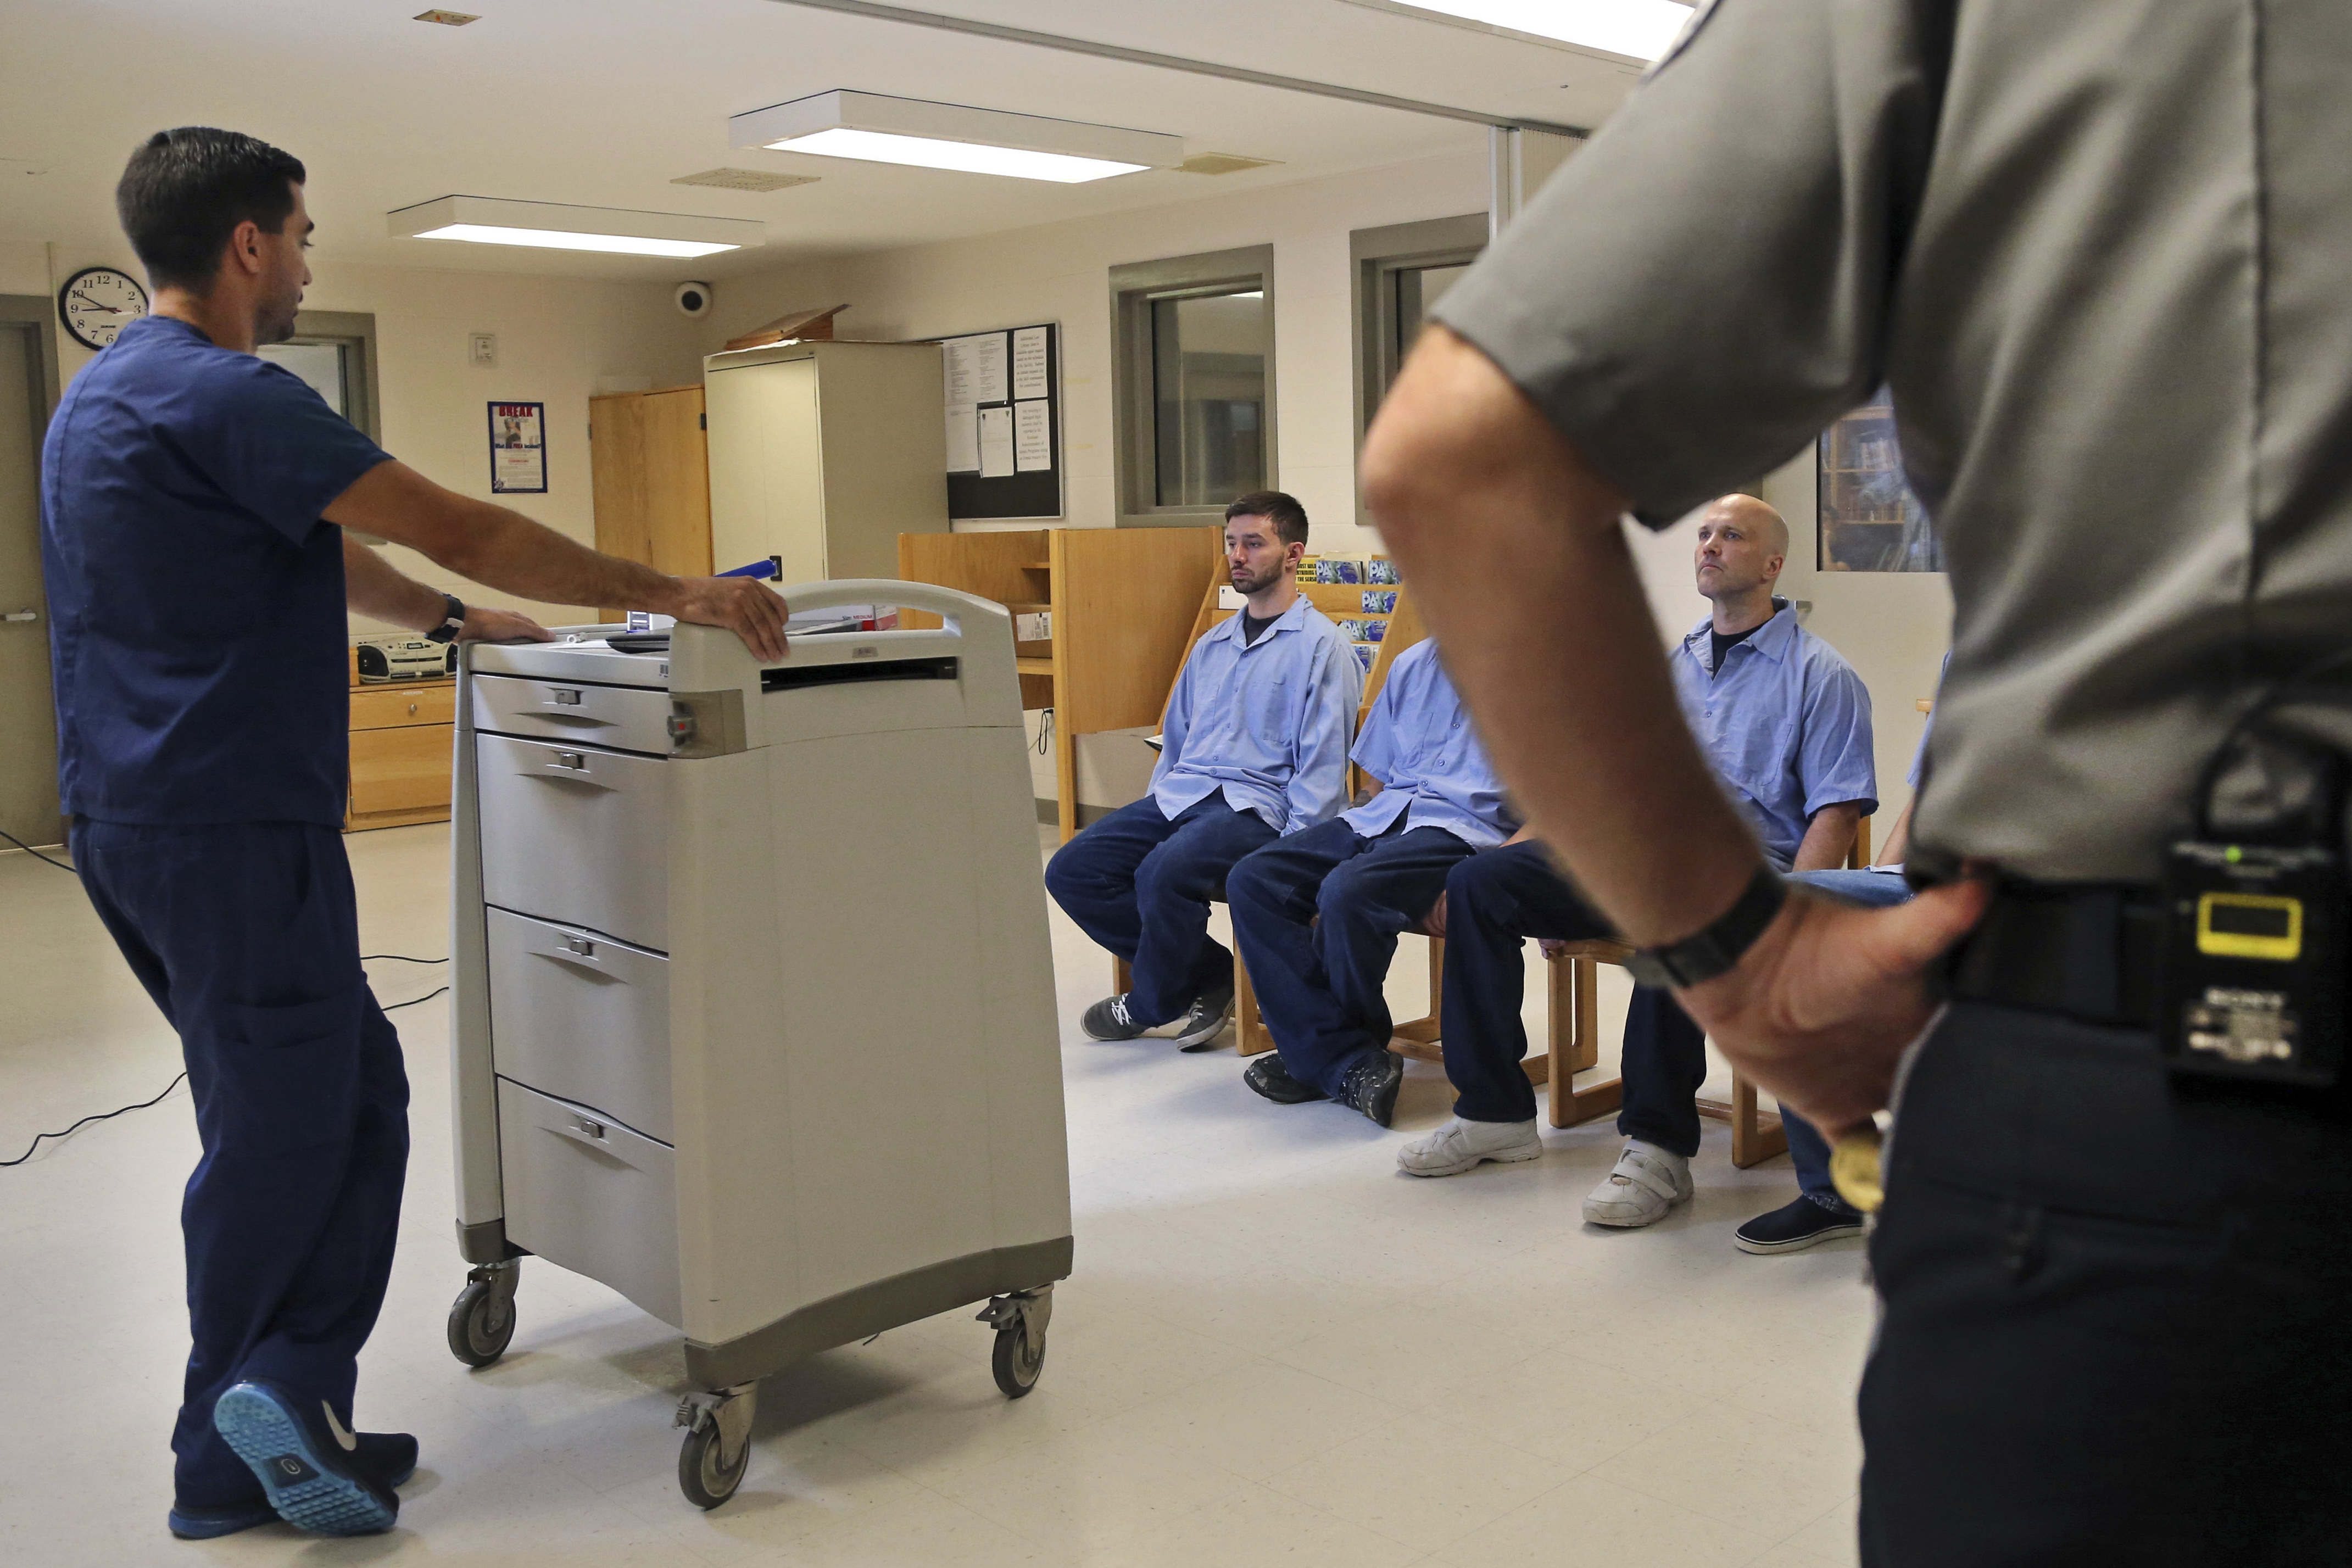 County Jails Struggle With A New Role As America's Prime Centers For Opioid Detox